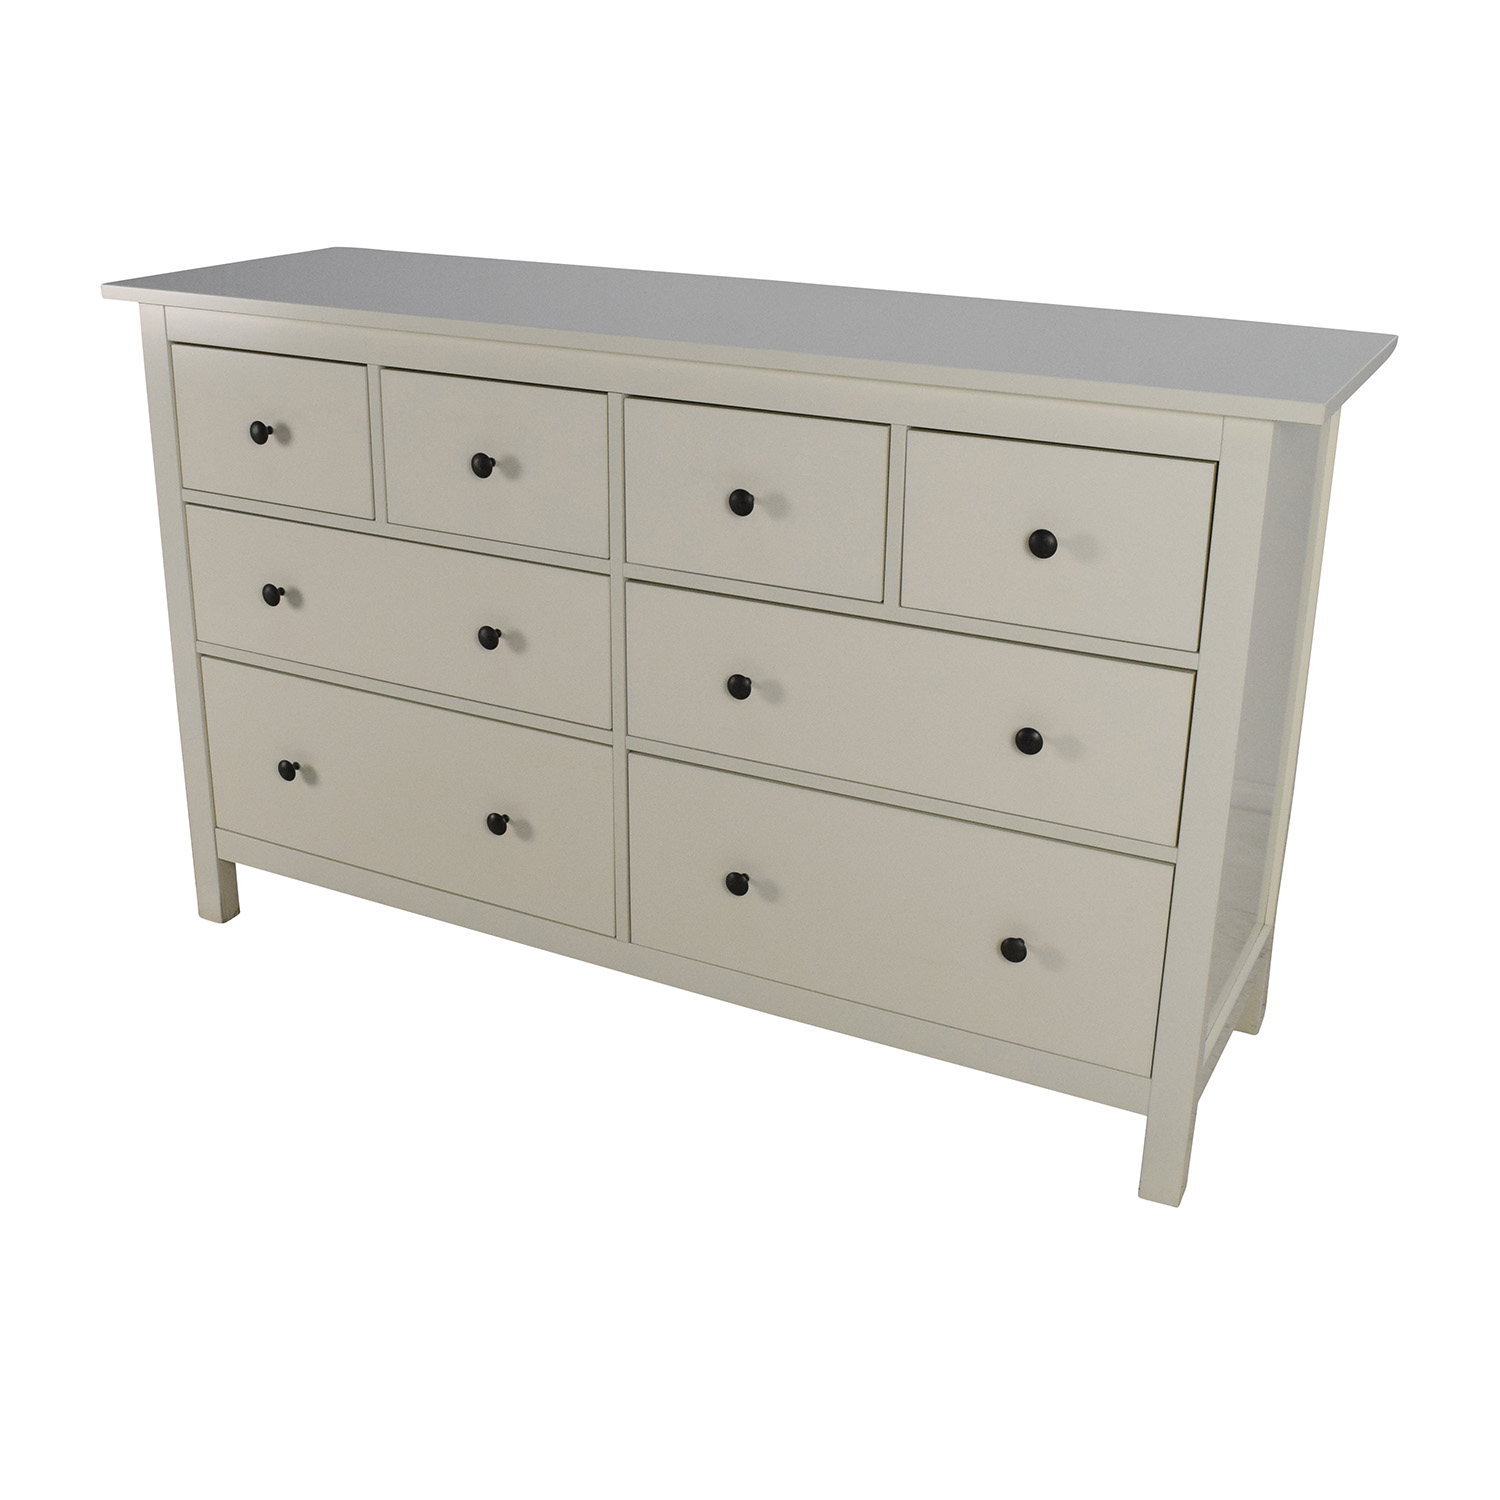 Off ikea hemnes drawer dresser storage